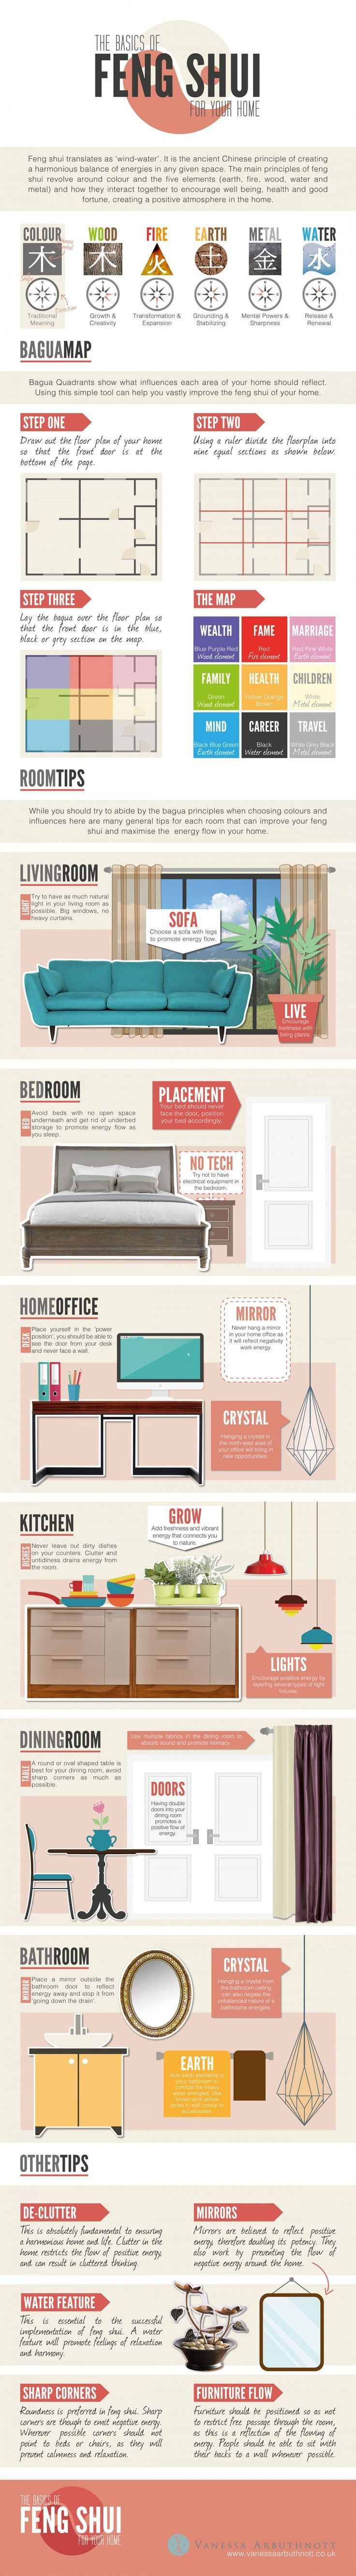 The Basics Of Feng Shui For Your Home Infographic Asian Home Decor Feng Shui House Feng Shui